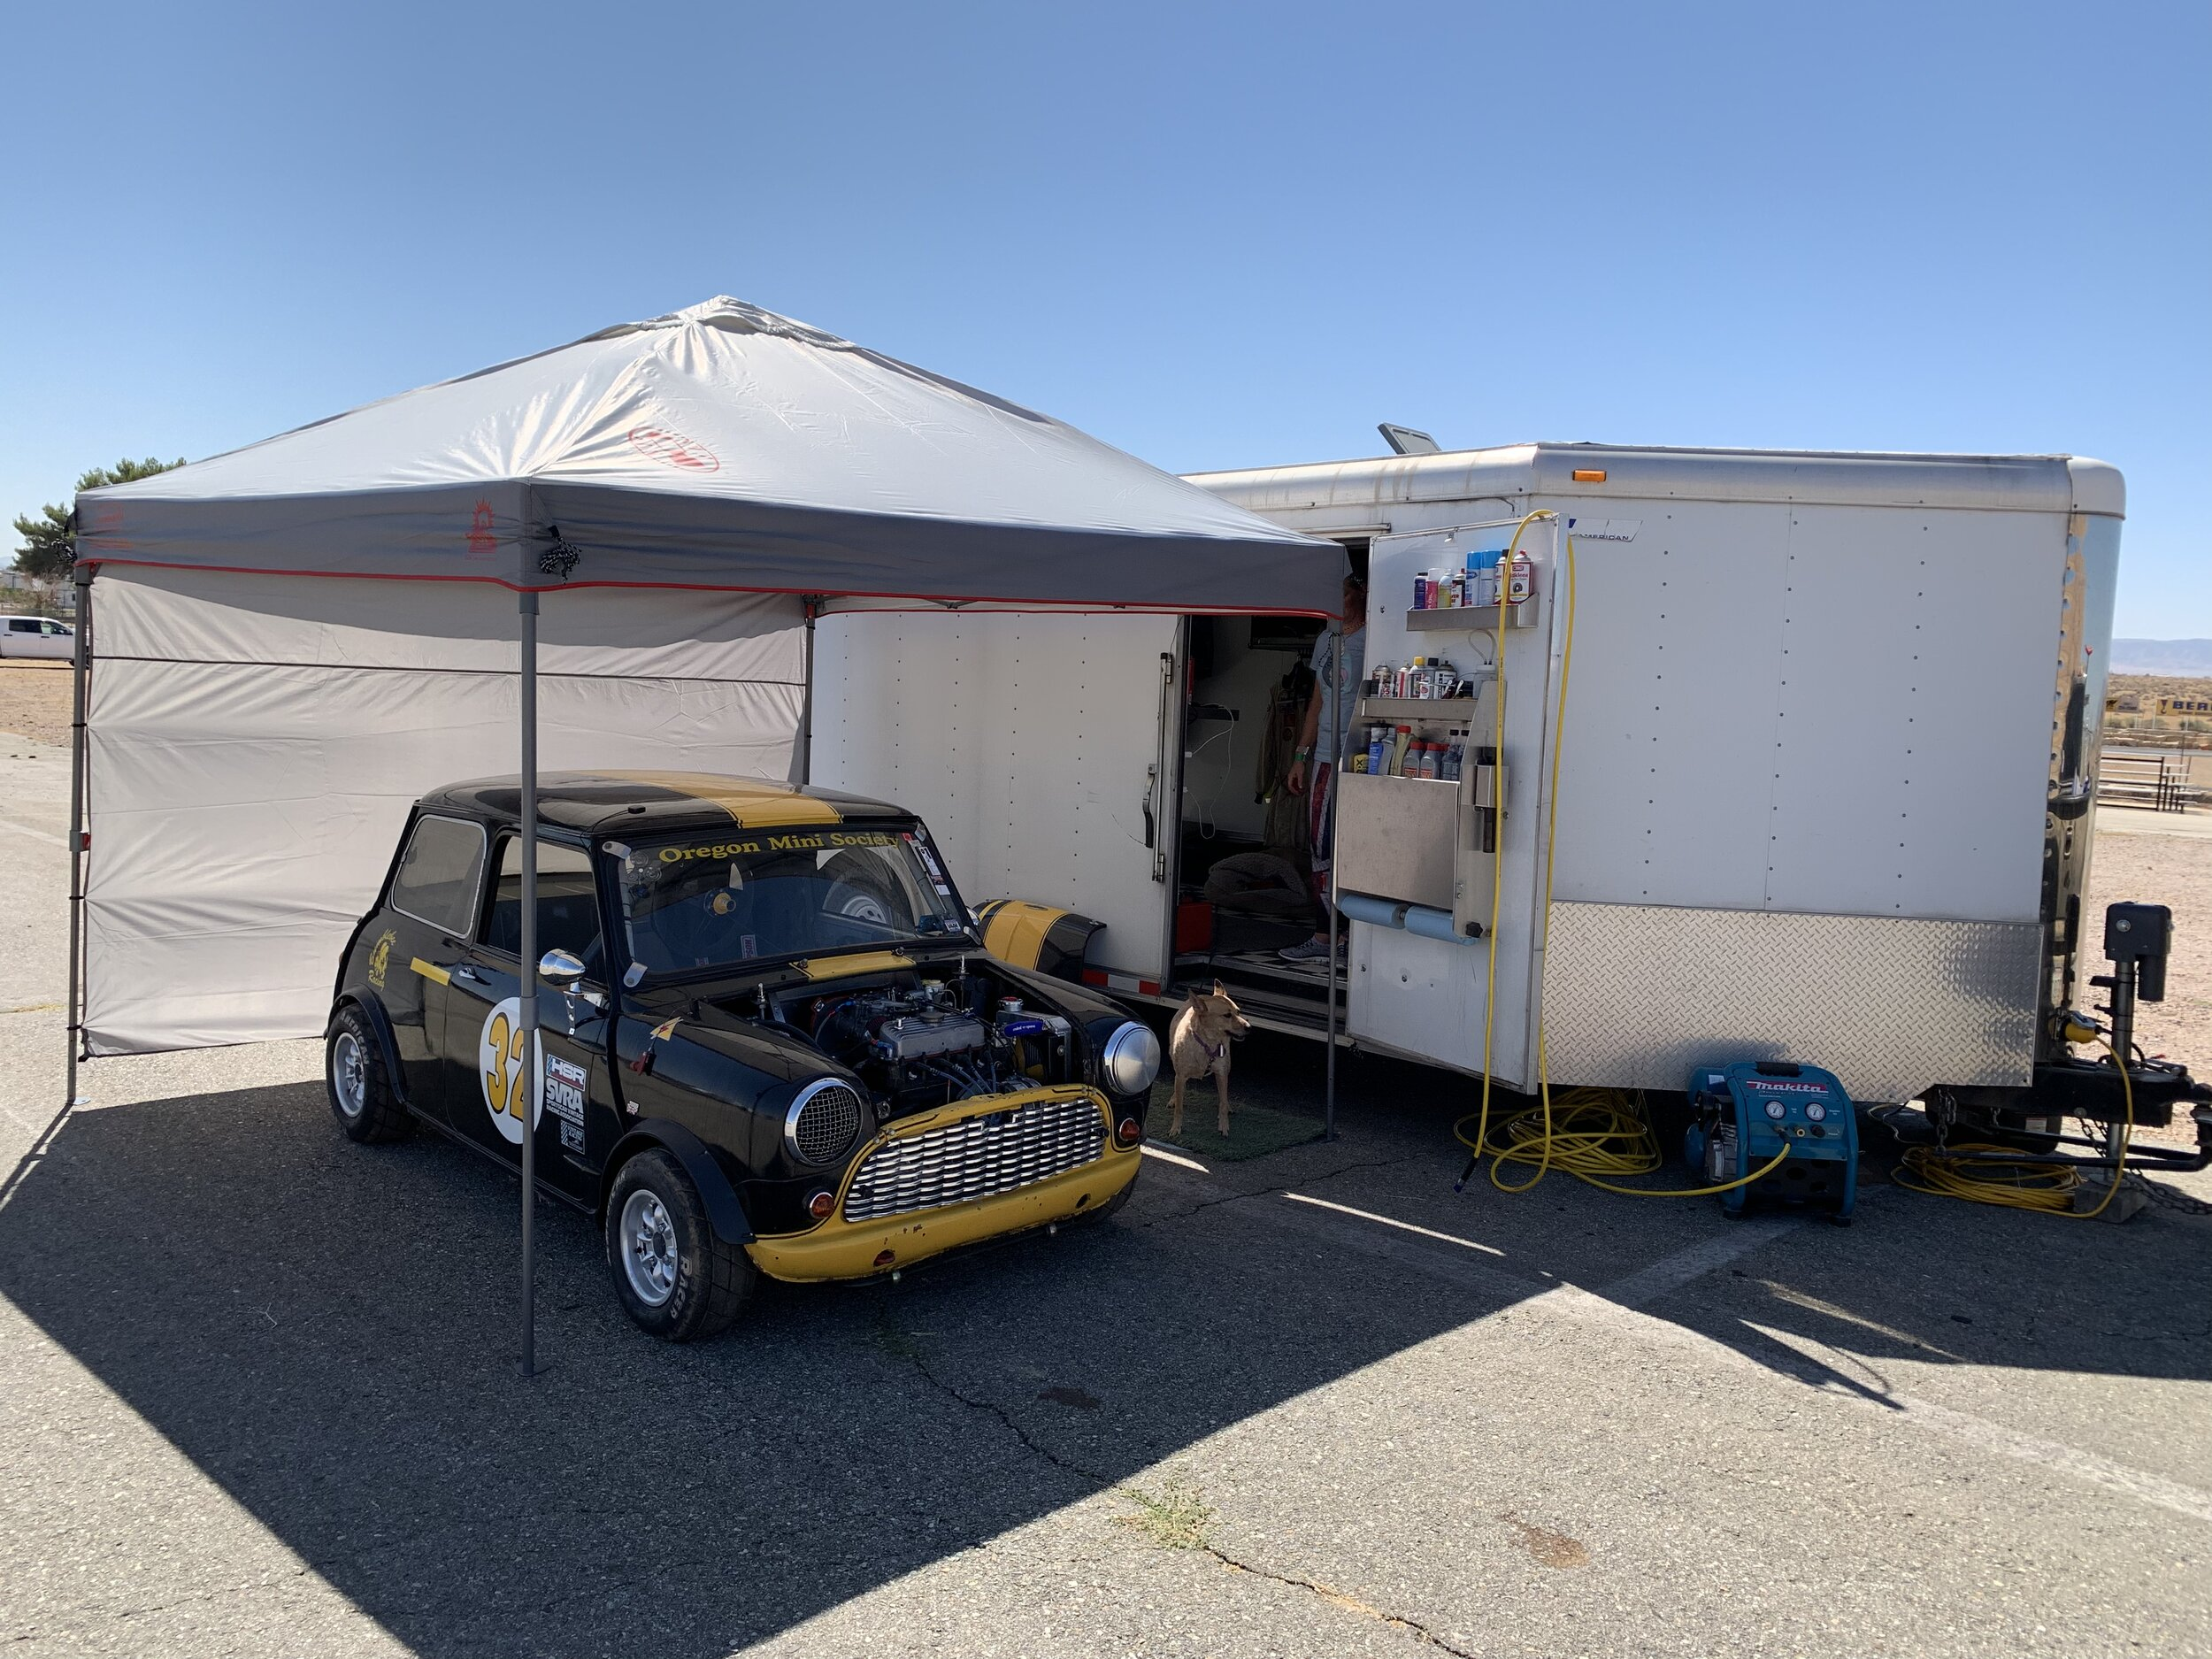 Alex's 65 Austin Mini Cooper S, raced by Shannon Penrith with VARA out of  Southern California